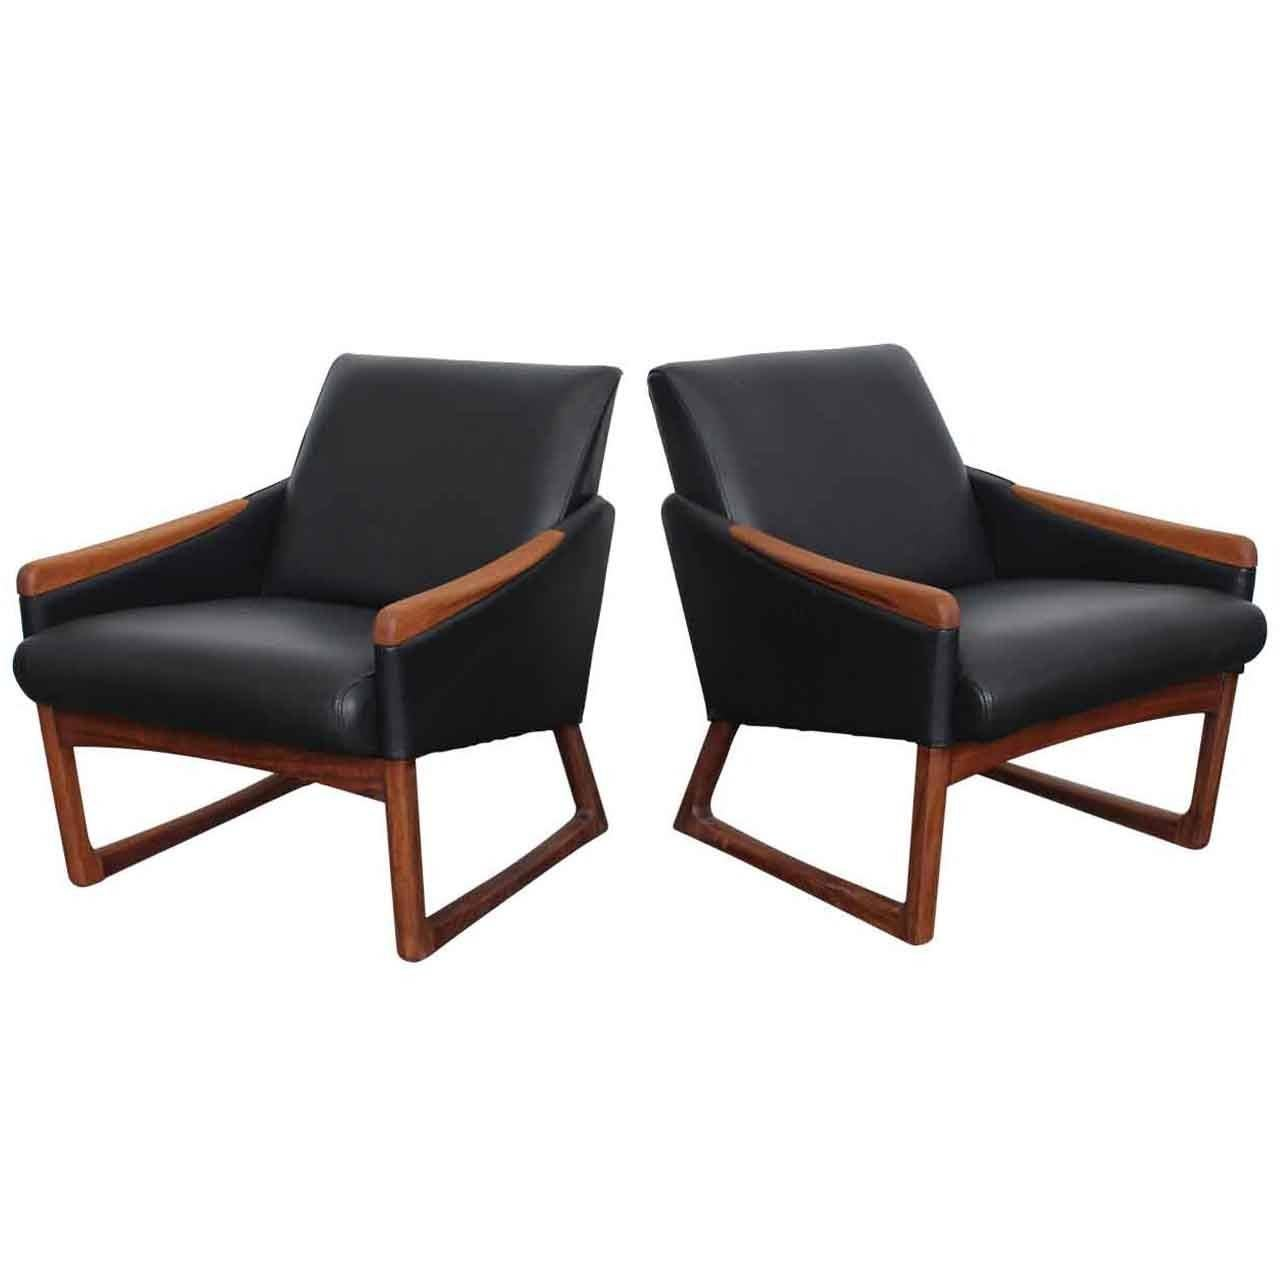 Mid century modern leather lounge chairs at 1stdibs for Stylish lounge chairs